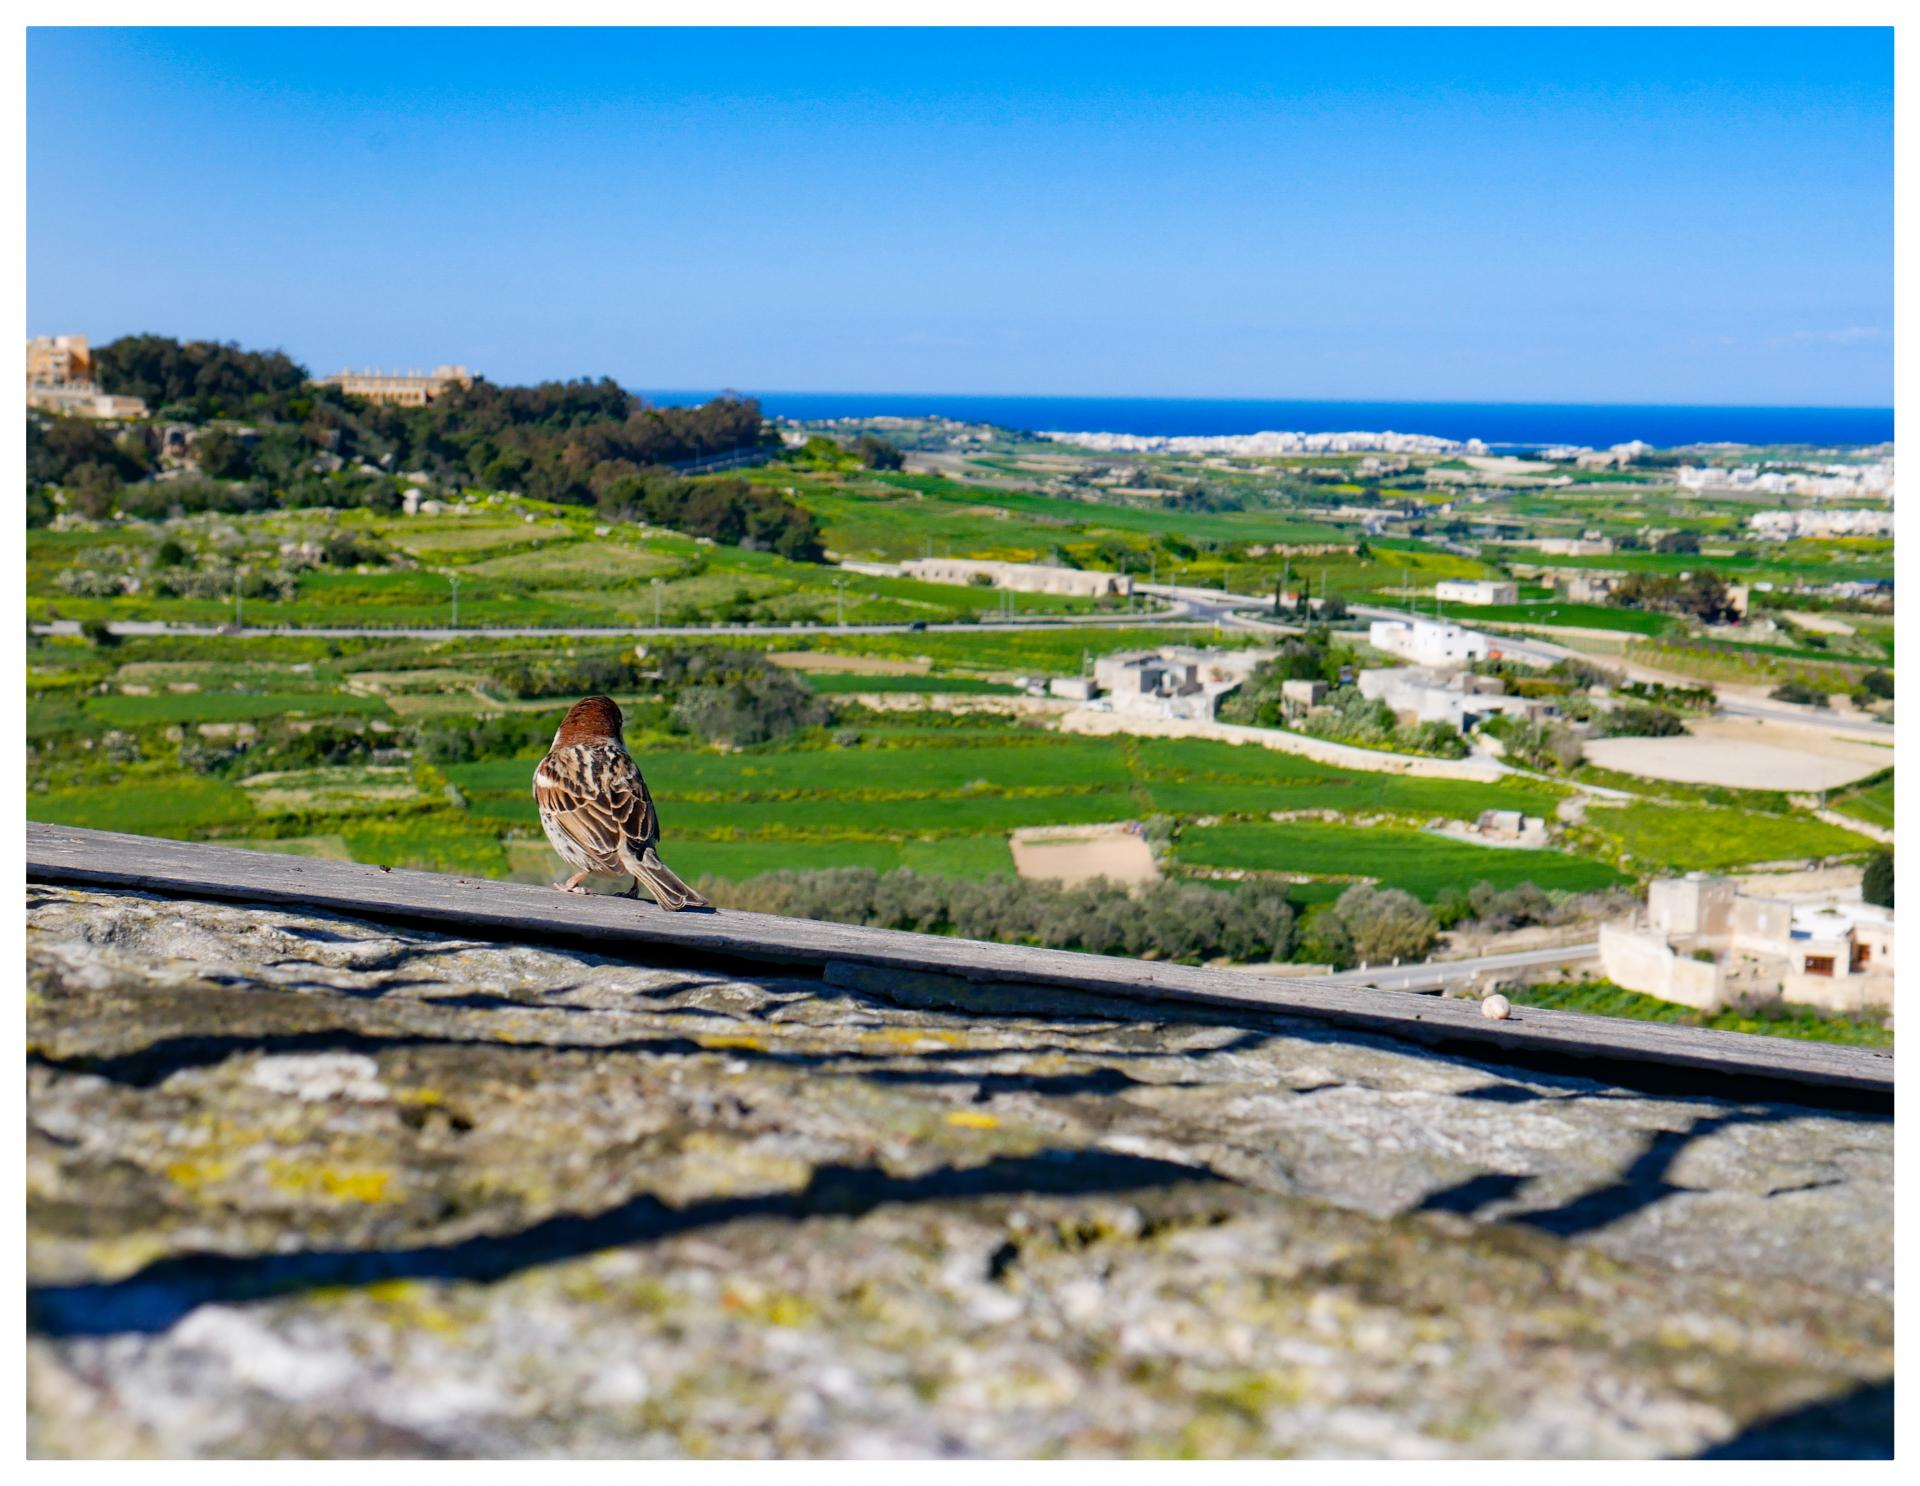 5 best places to eat and drink in Malta, including Fontanella Tea Garden, Mdina. www.kittyandb.com